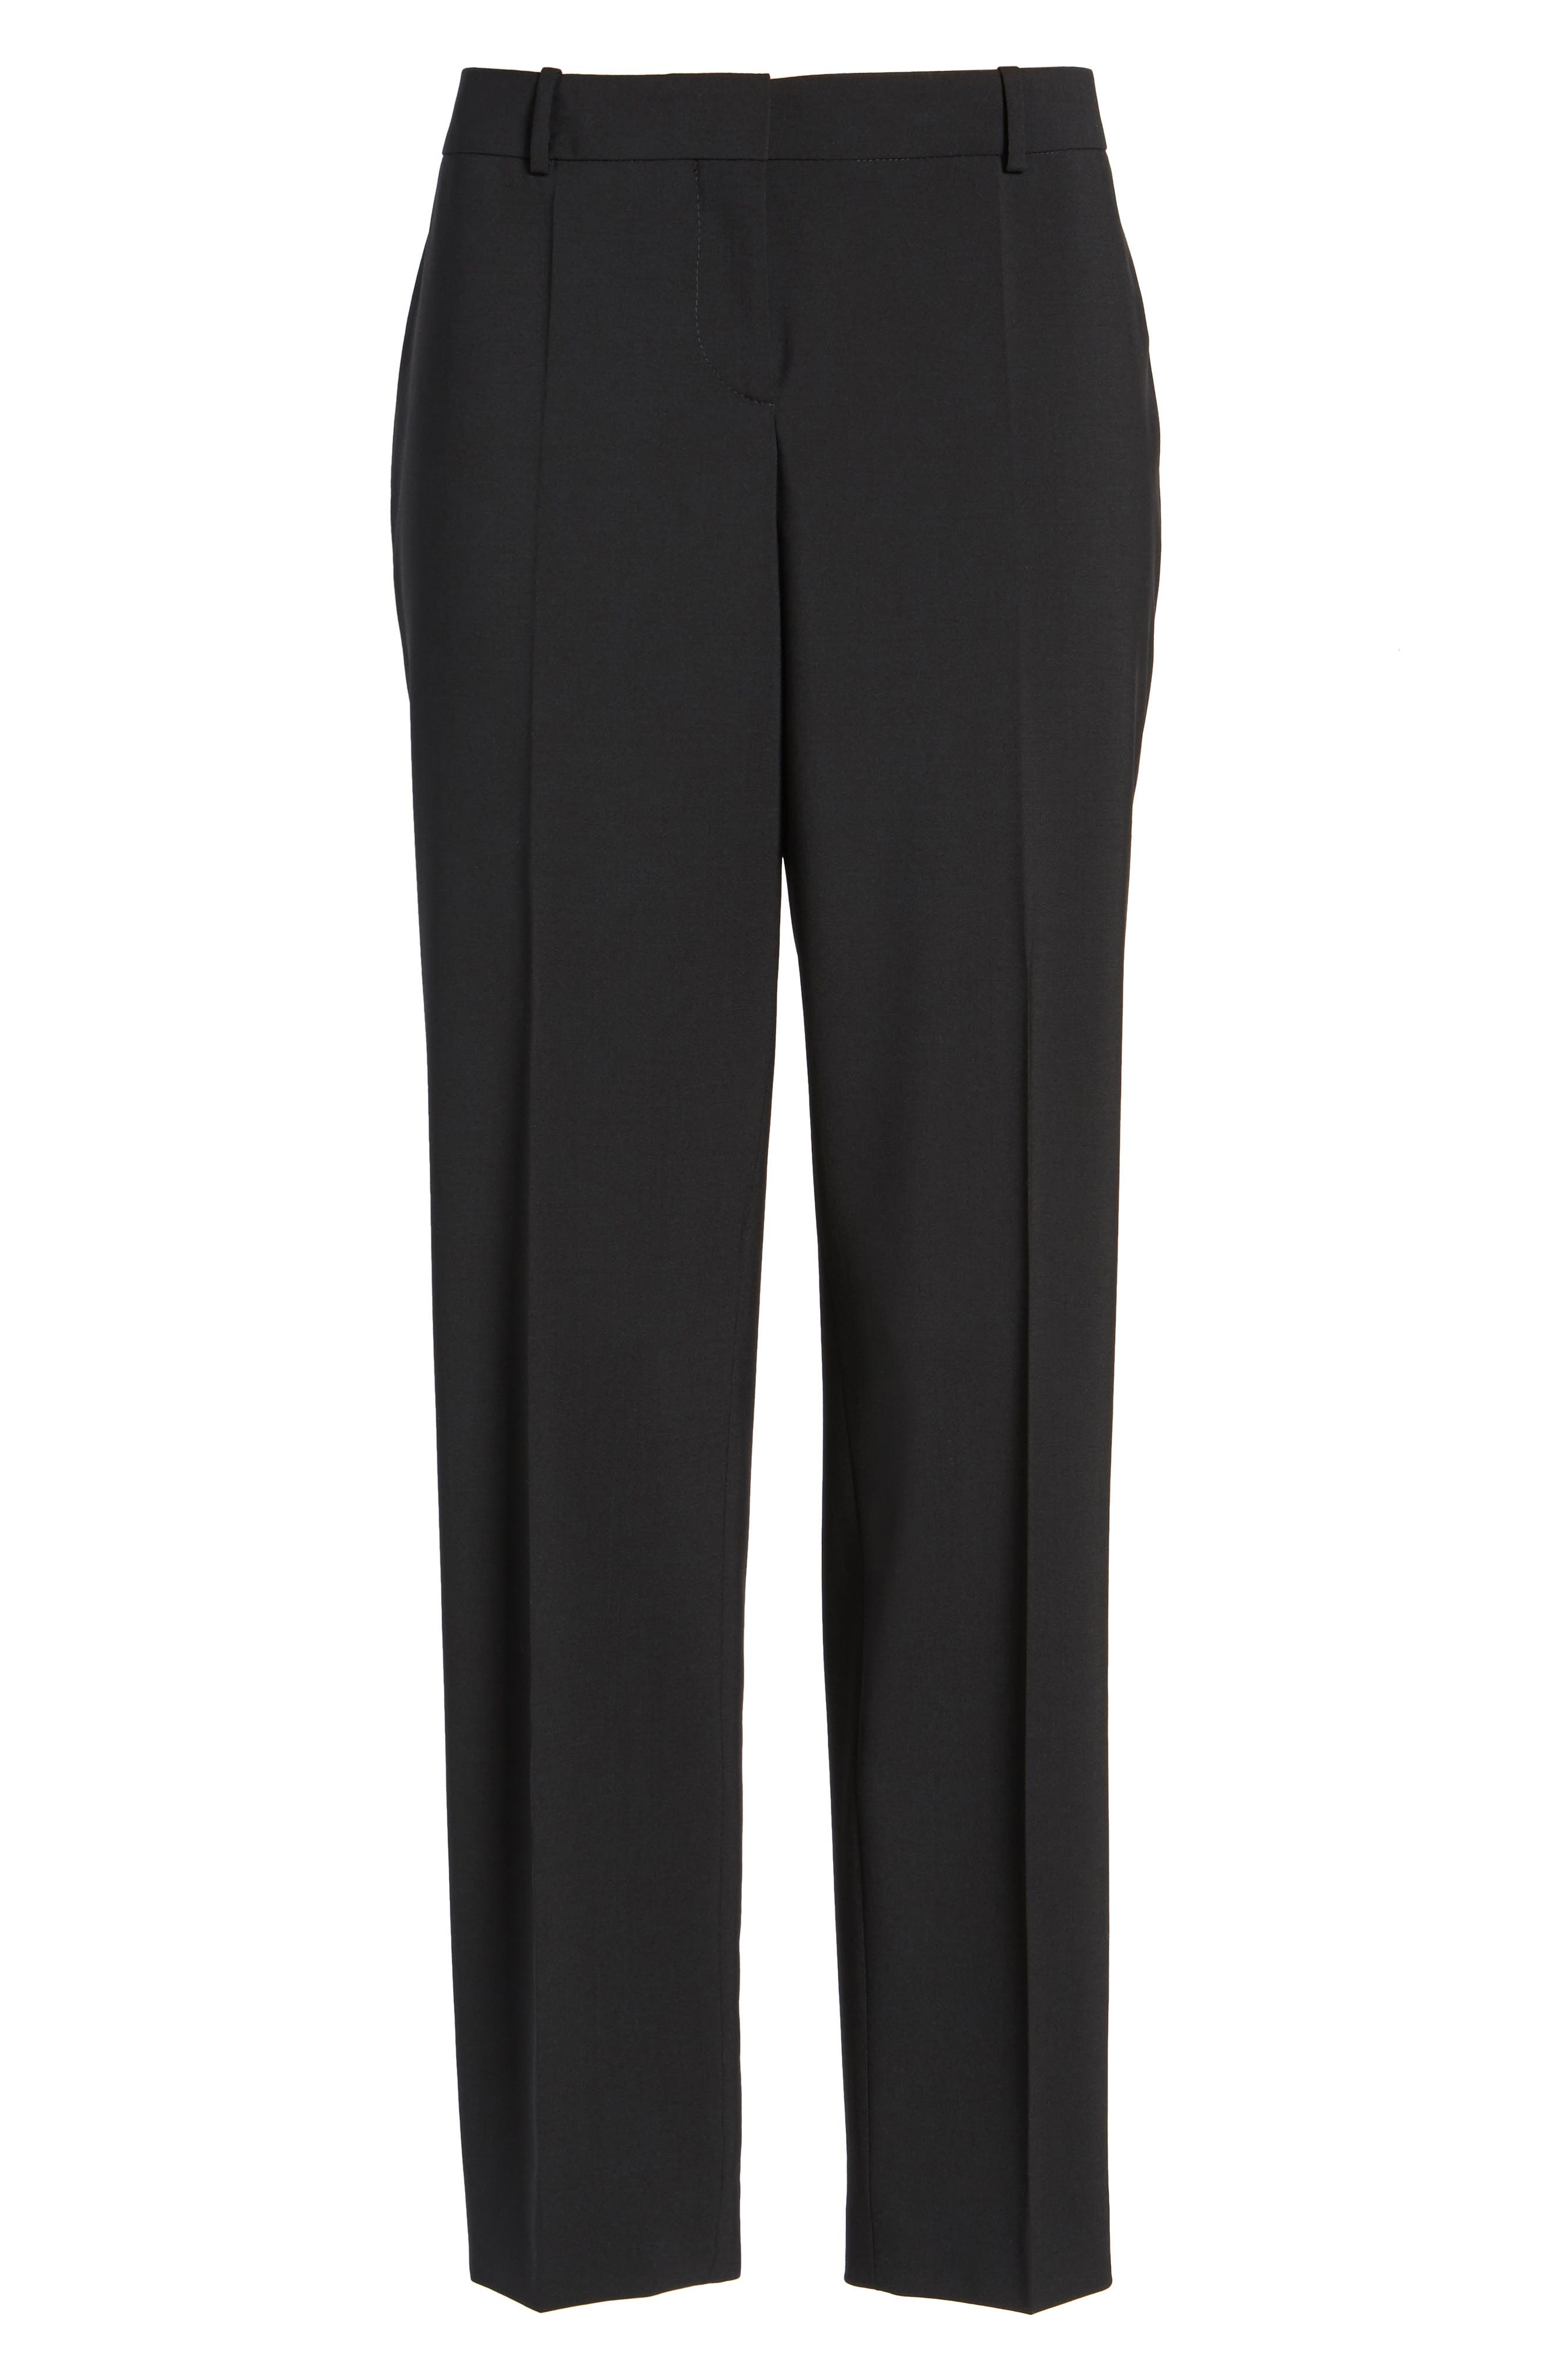 BOSS Tiluna Tropical Stretch Wool Ankle Trousers, Main, color, BLACK